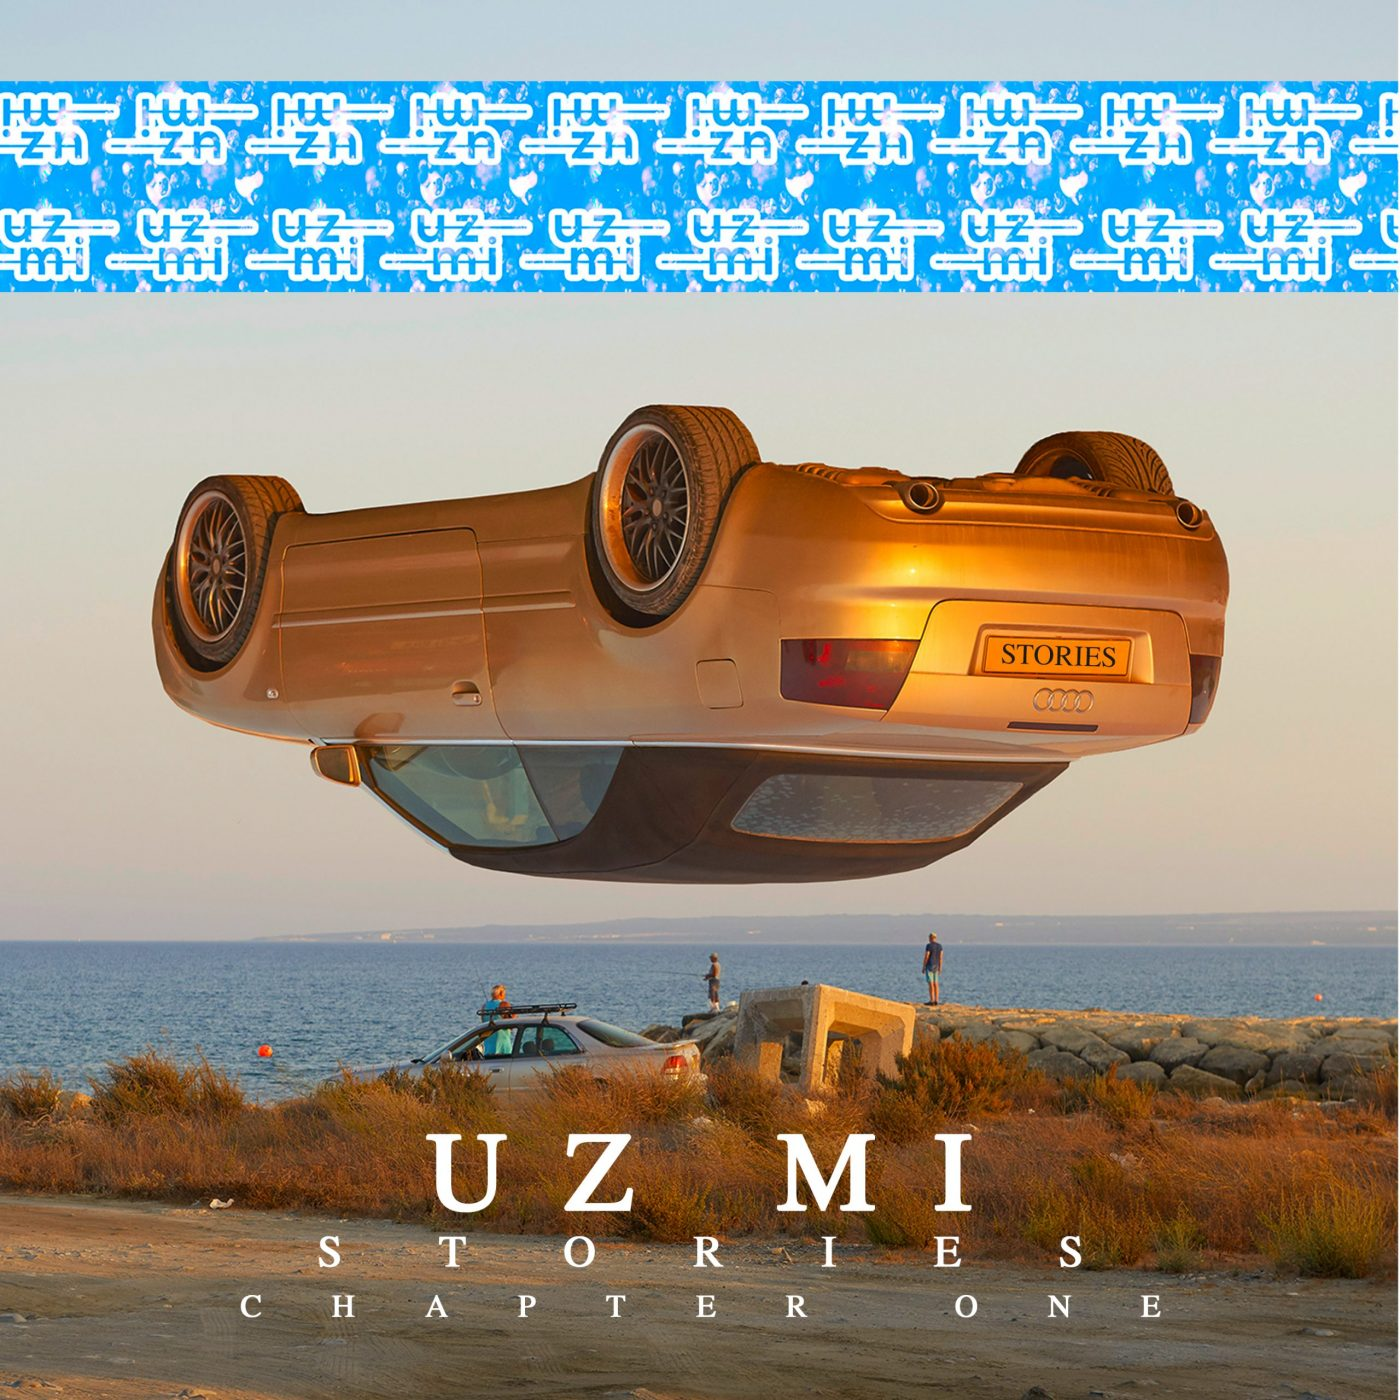 V/A – Stories, Chapter One (UZ MI Records)